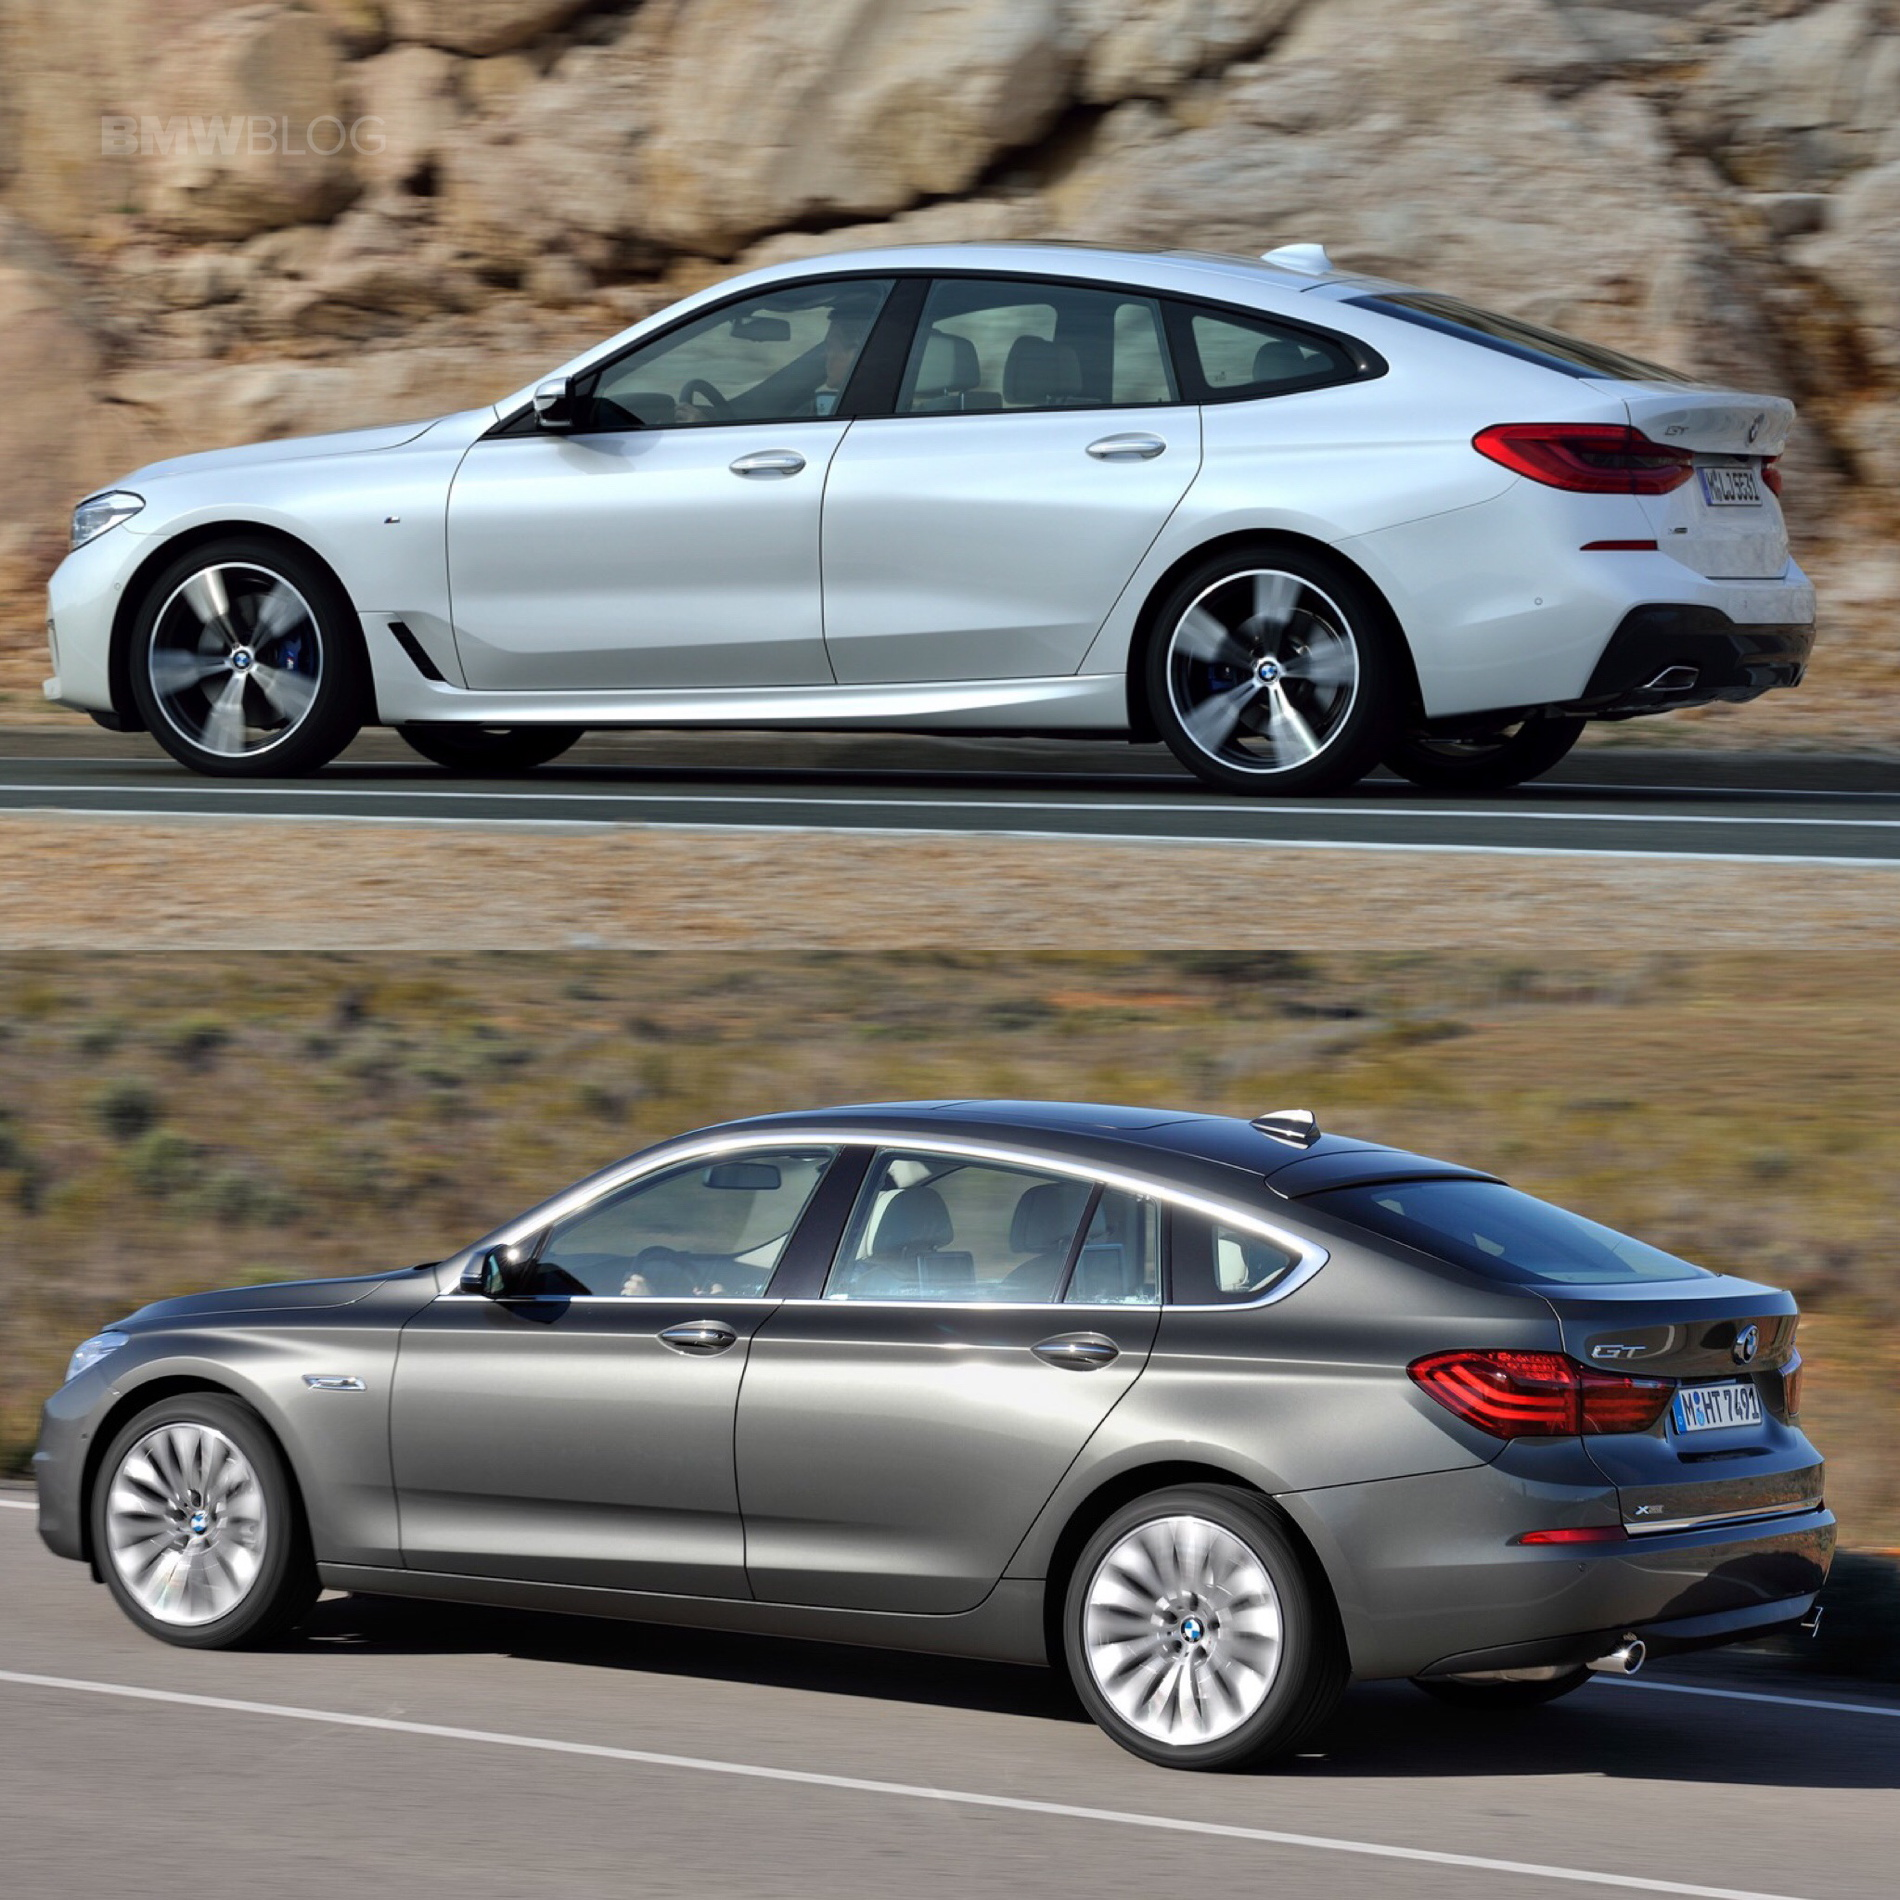 Overall The New Bmw 6 Series Gran Turismo Is A Marked Improvement Over 5 Variant Of Same Car However It Still Isn T Pretty And We